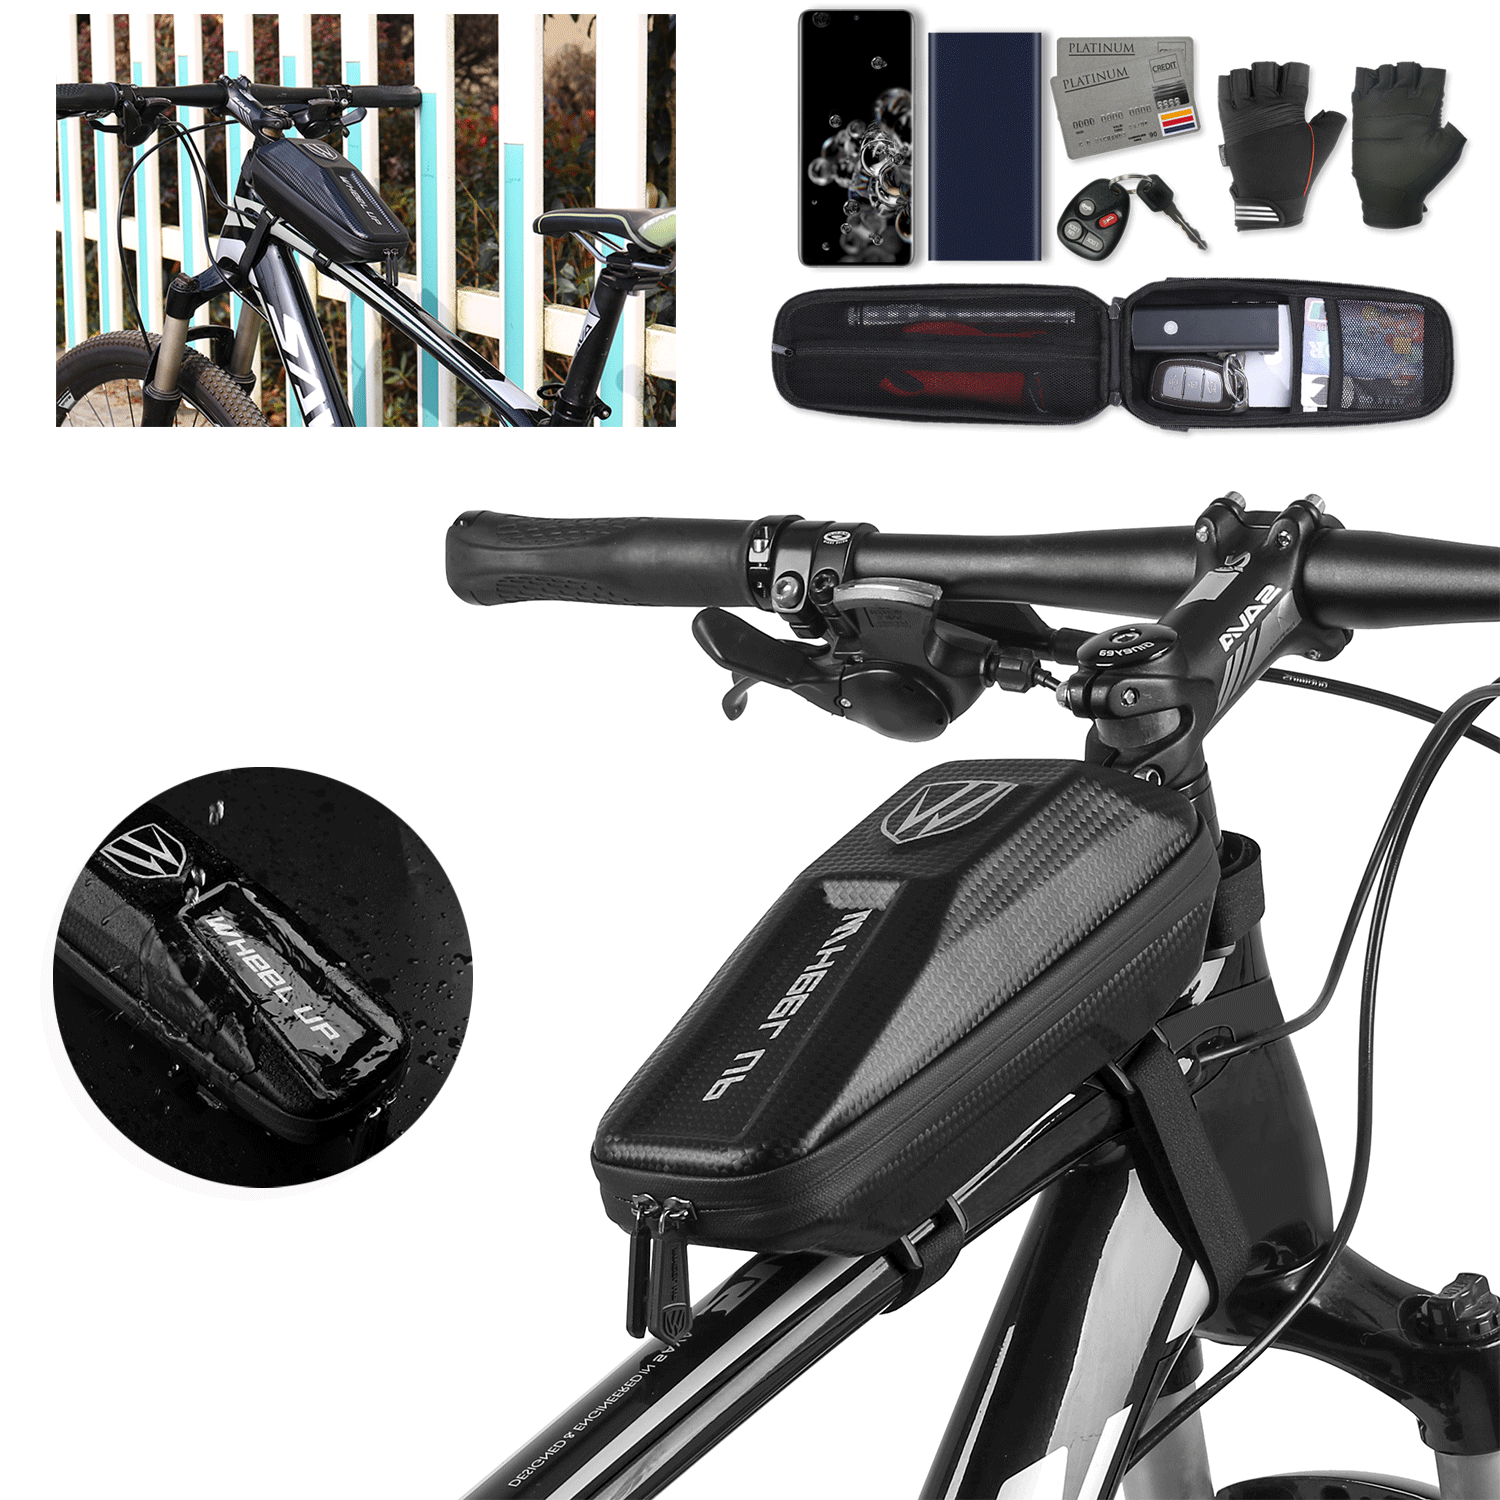 Front Top Tube Waterproof Frame Bicycle Bike Bag Cell Phone Pouch Holder Case Bags & Panniers